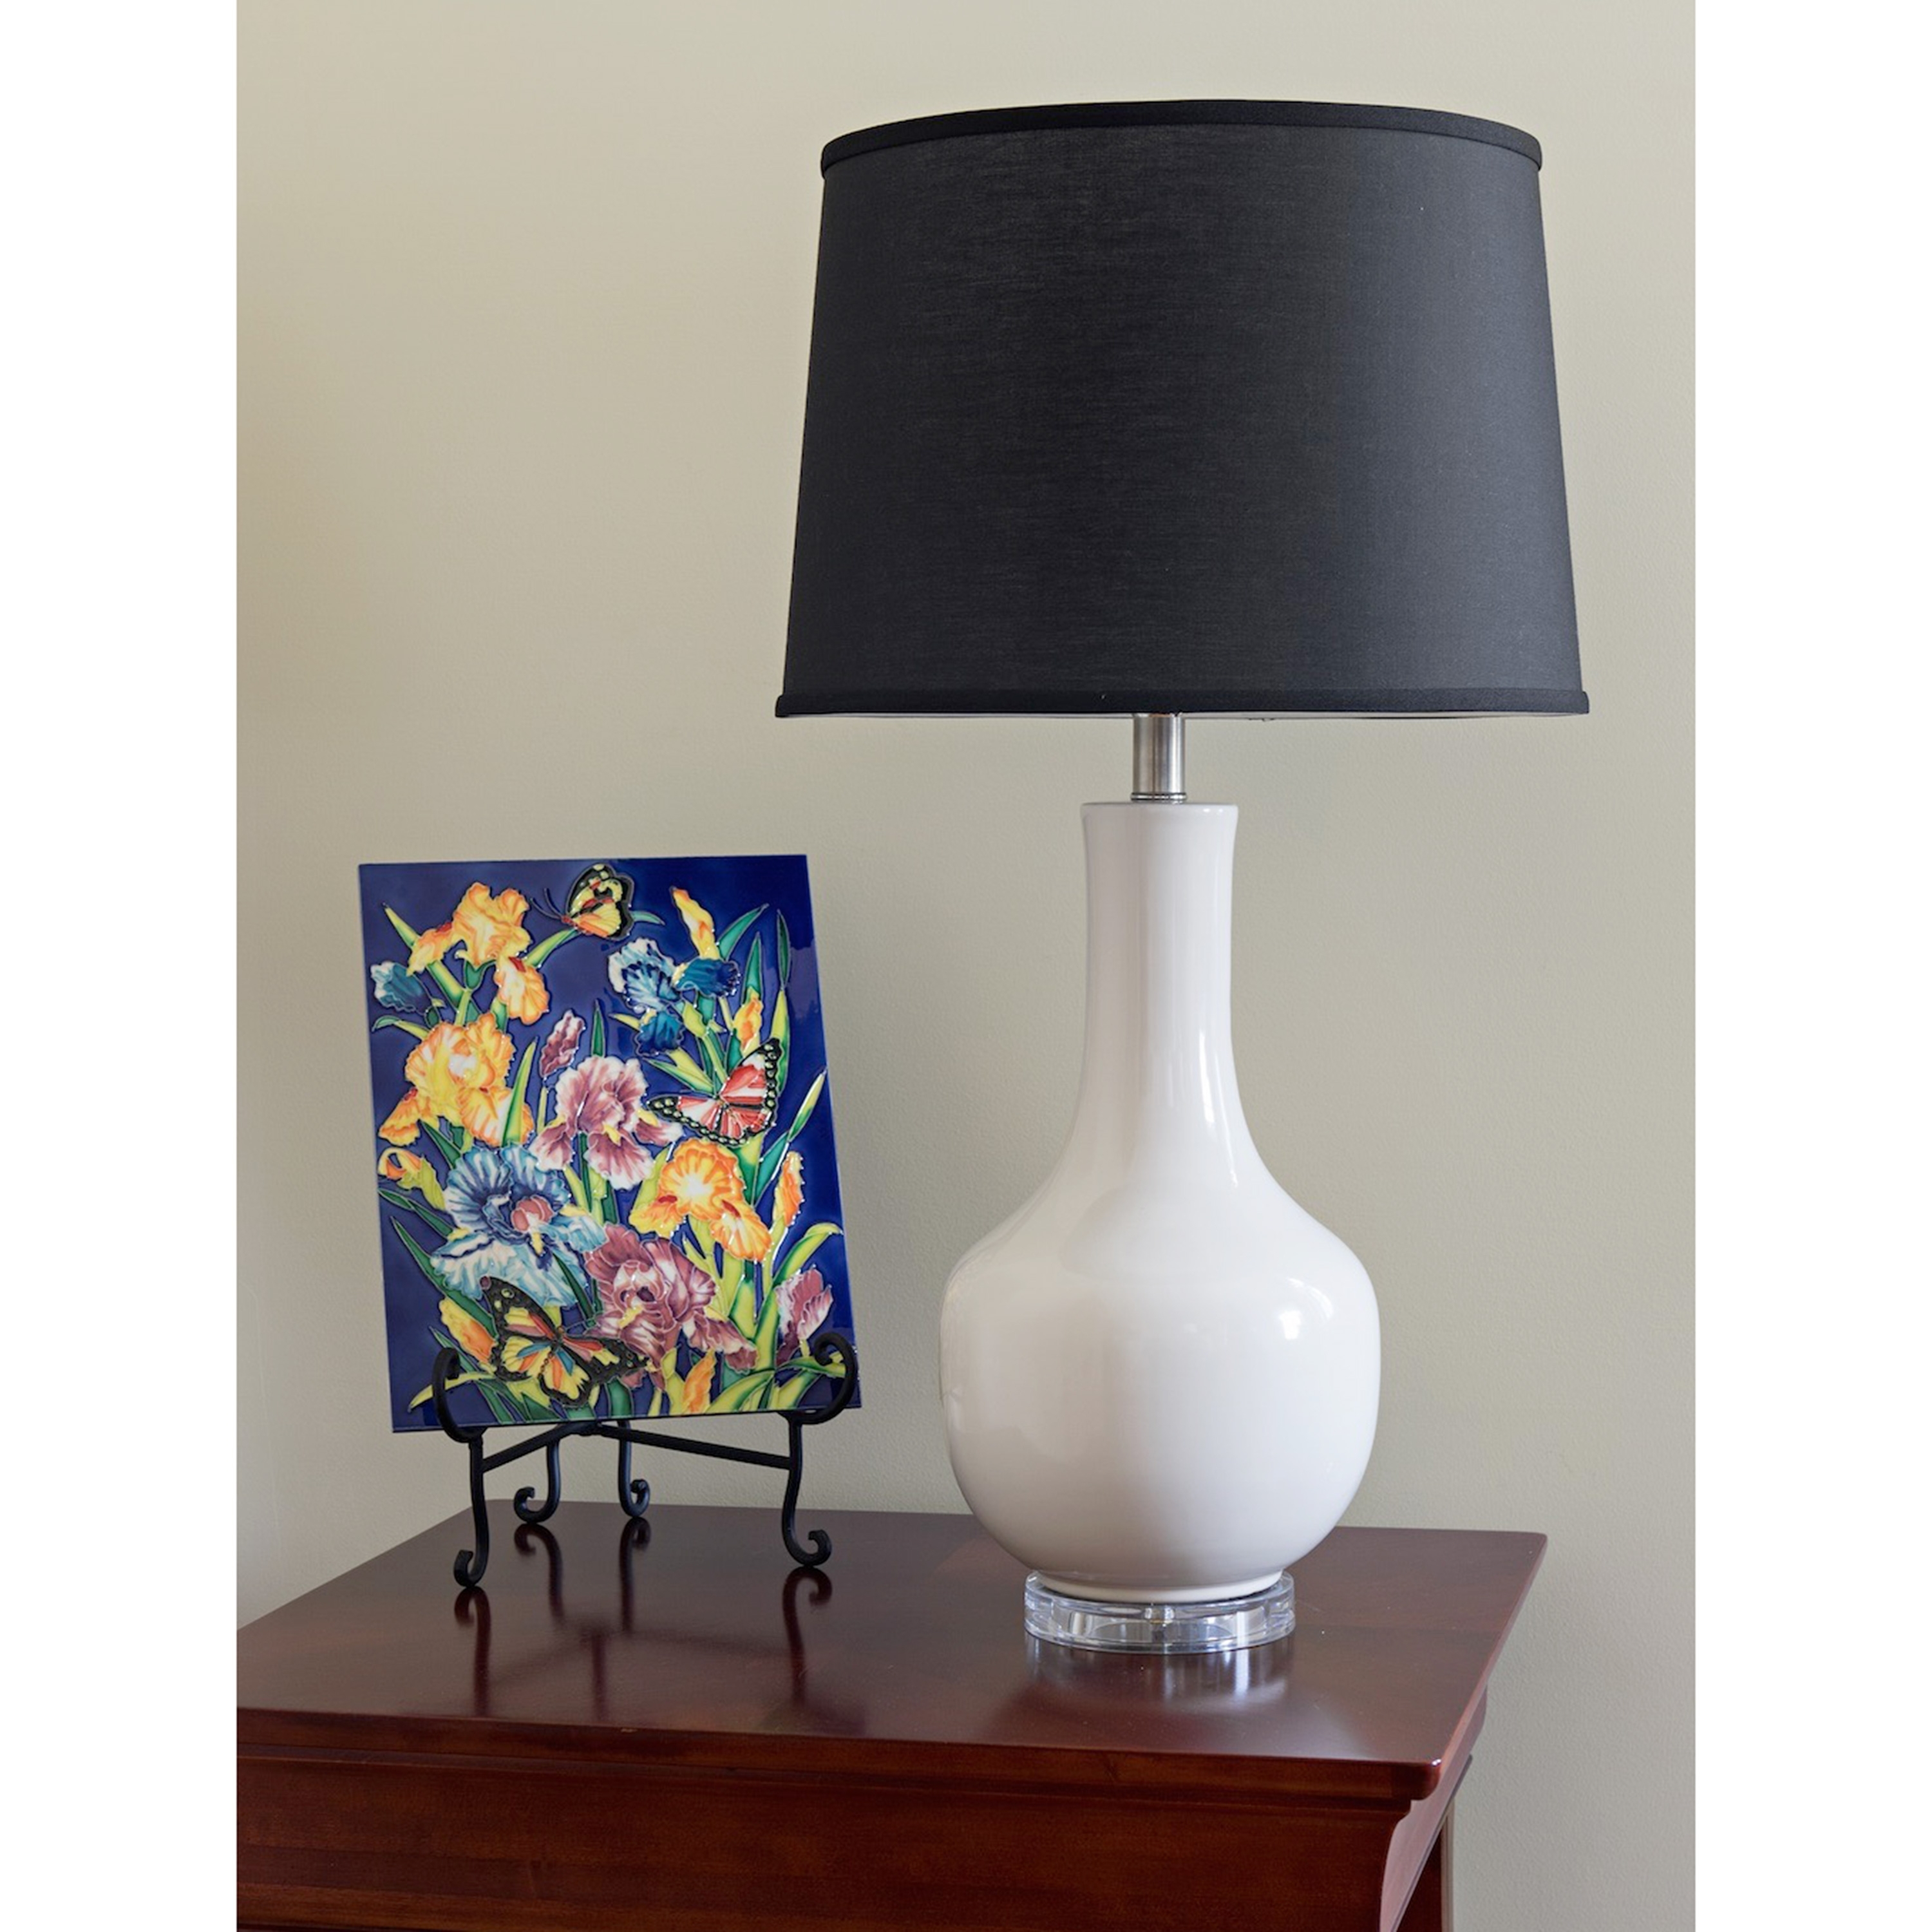 67 Most First-Rate Living Room Lamps Designer Table Purple Lamp intended for 2017 Teal Living Room Table Lamps